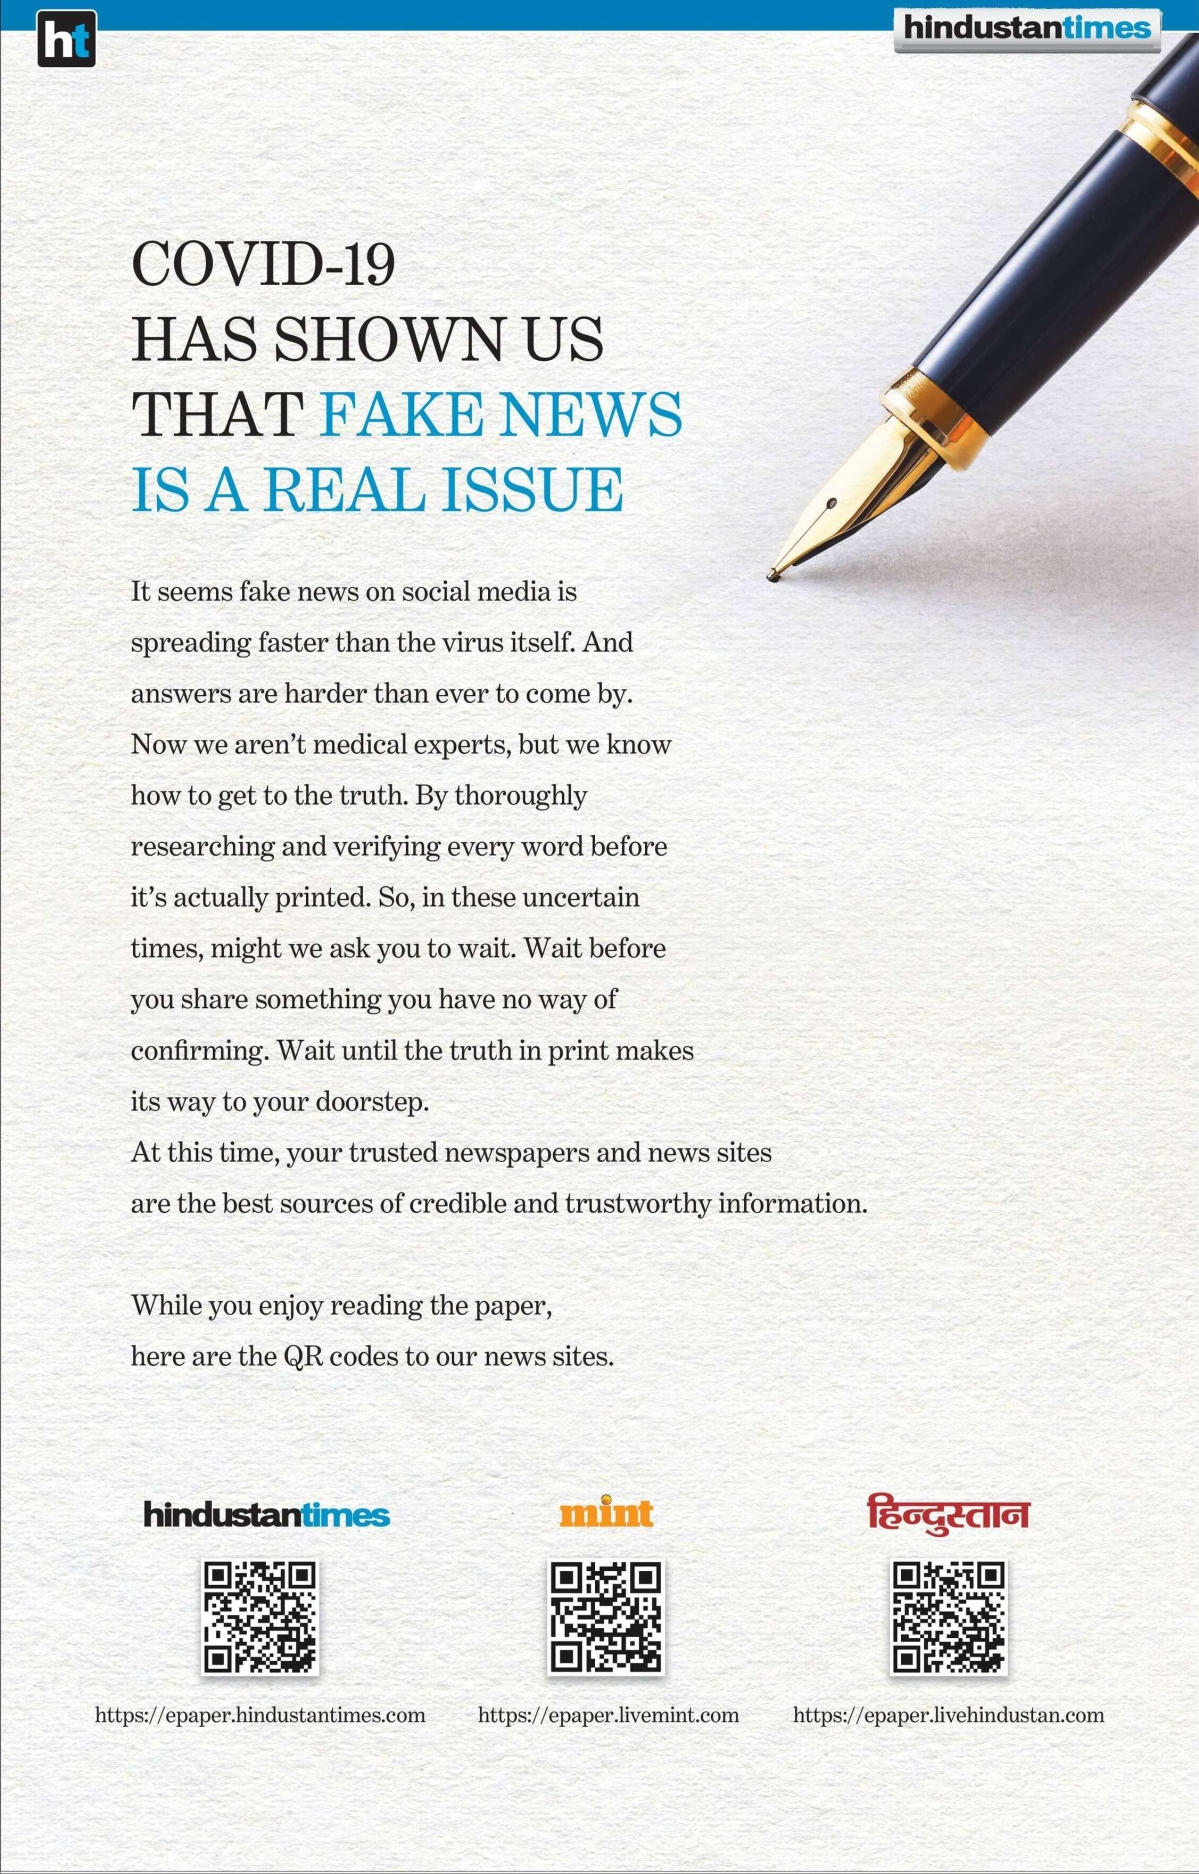 Hindustan Times' new ad takes the battle against fake news forward